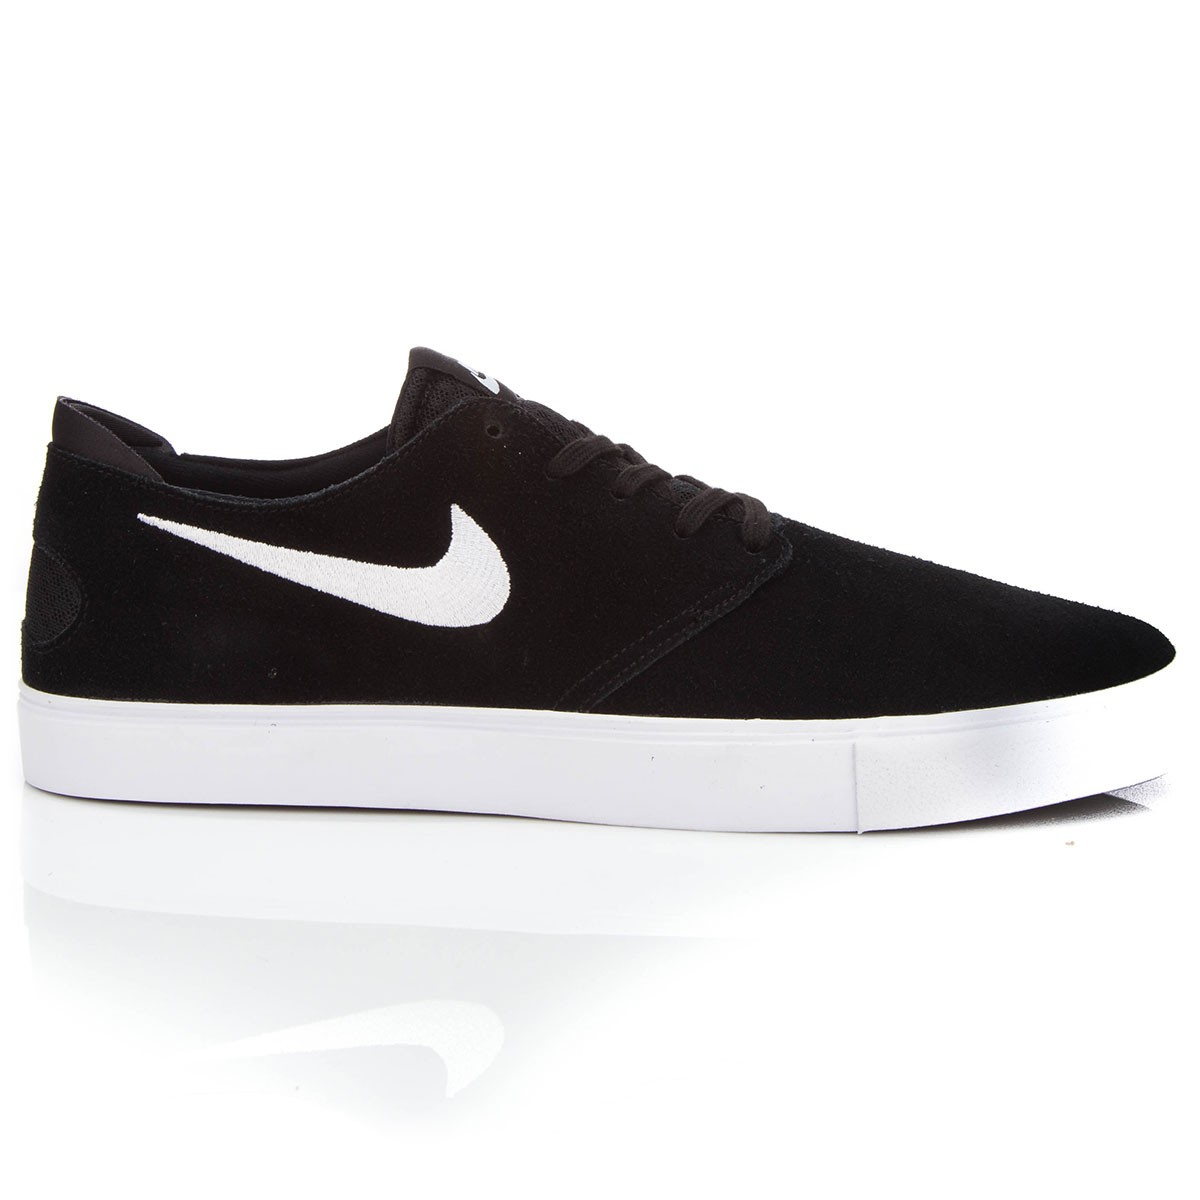 detailed look c59c8 fb5ba ... coupon code for nike zoom oneshot sb shoes black white 10.0 ae088 74ce8